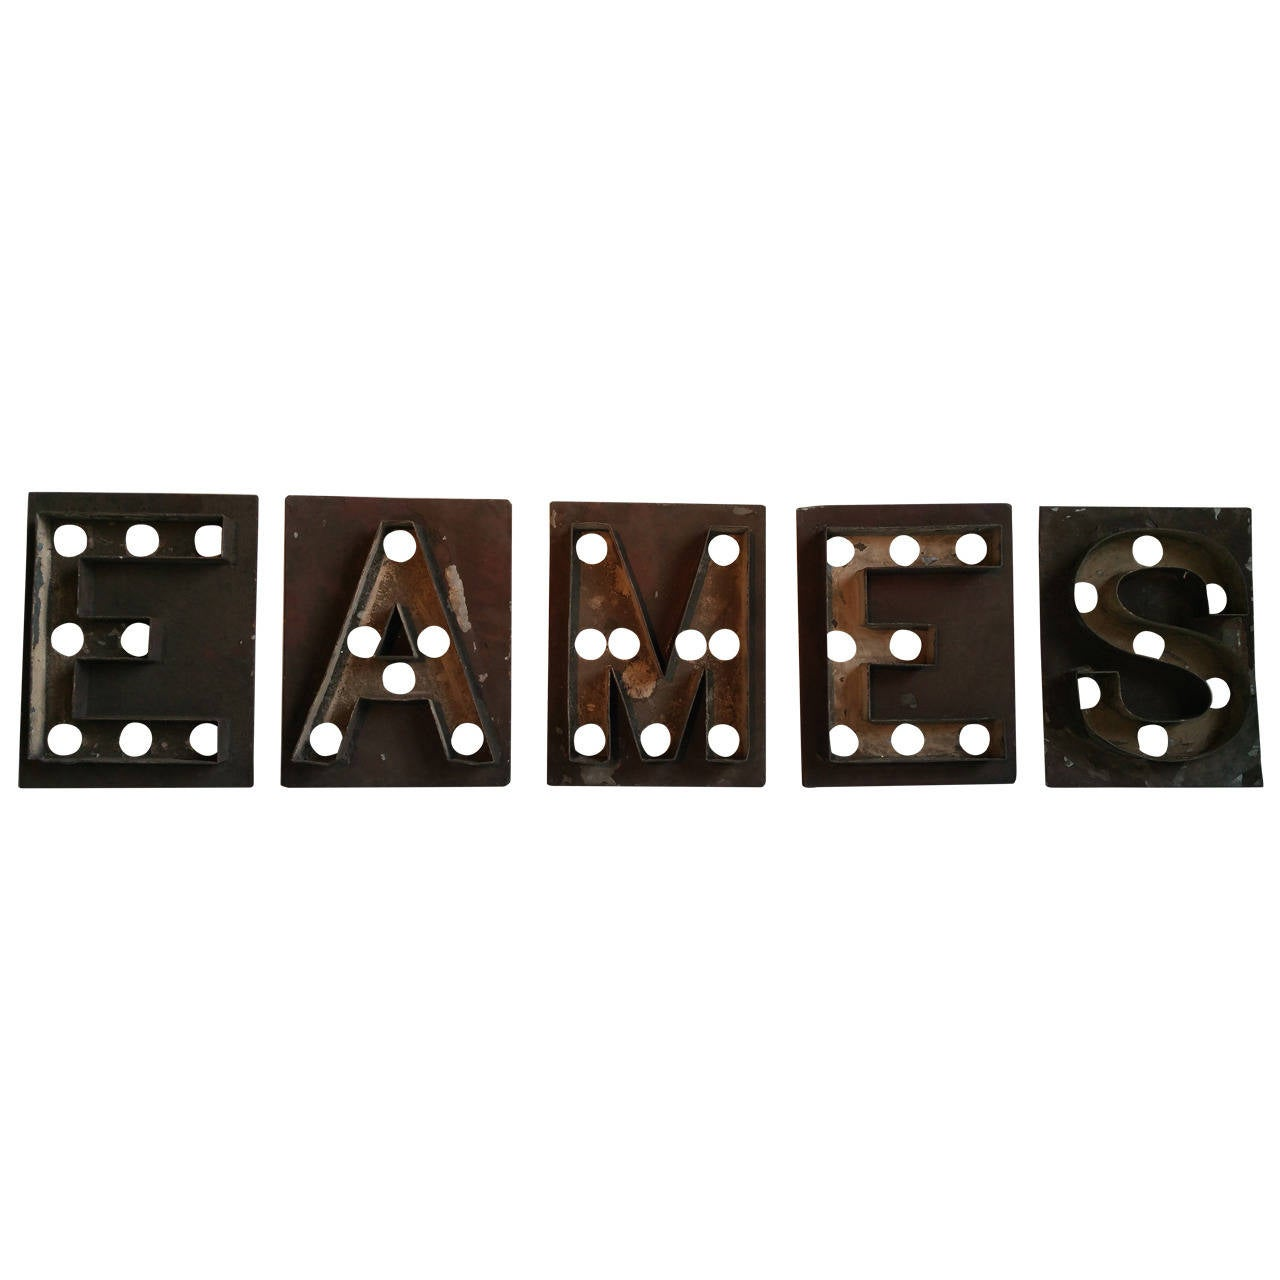 "Antique Marquee Letters, Shea's Theater, ""EAMES"" For Sale at 1stdibs"